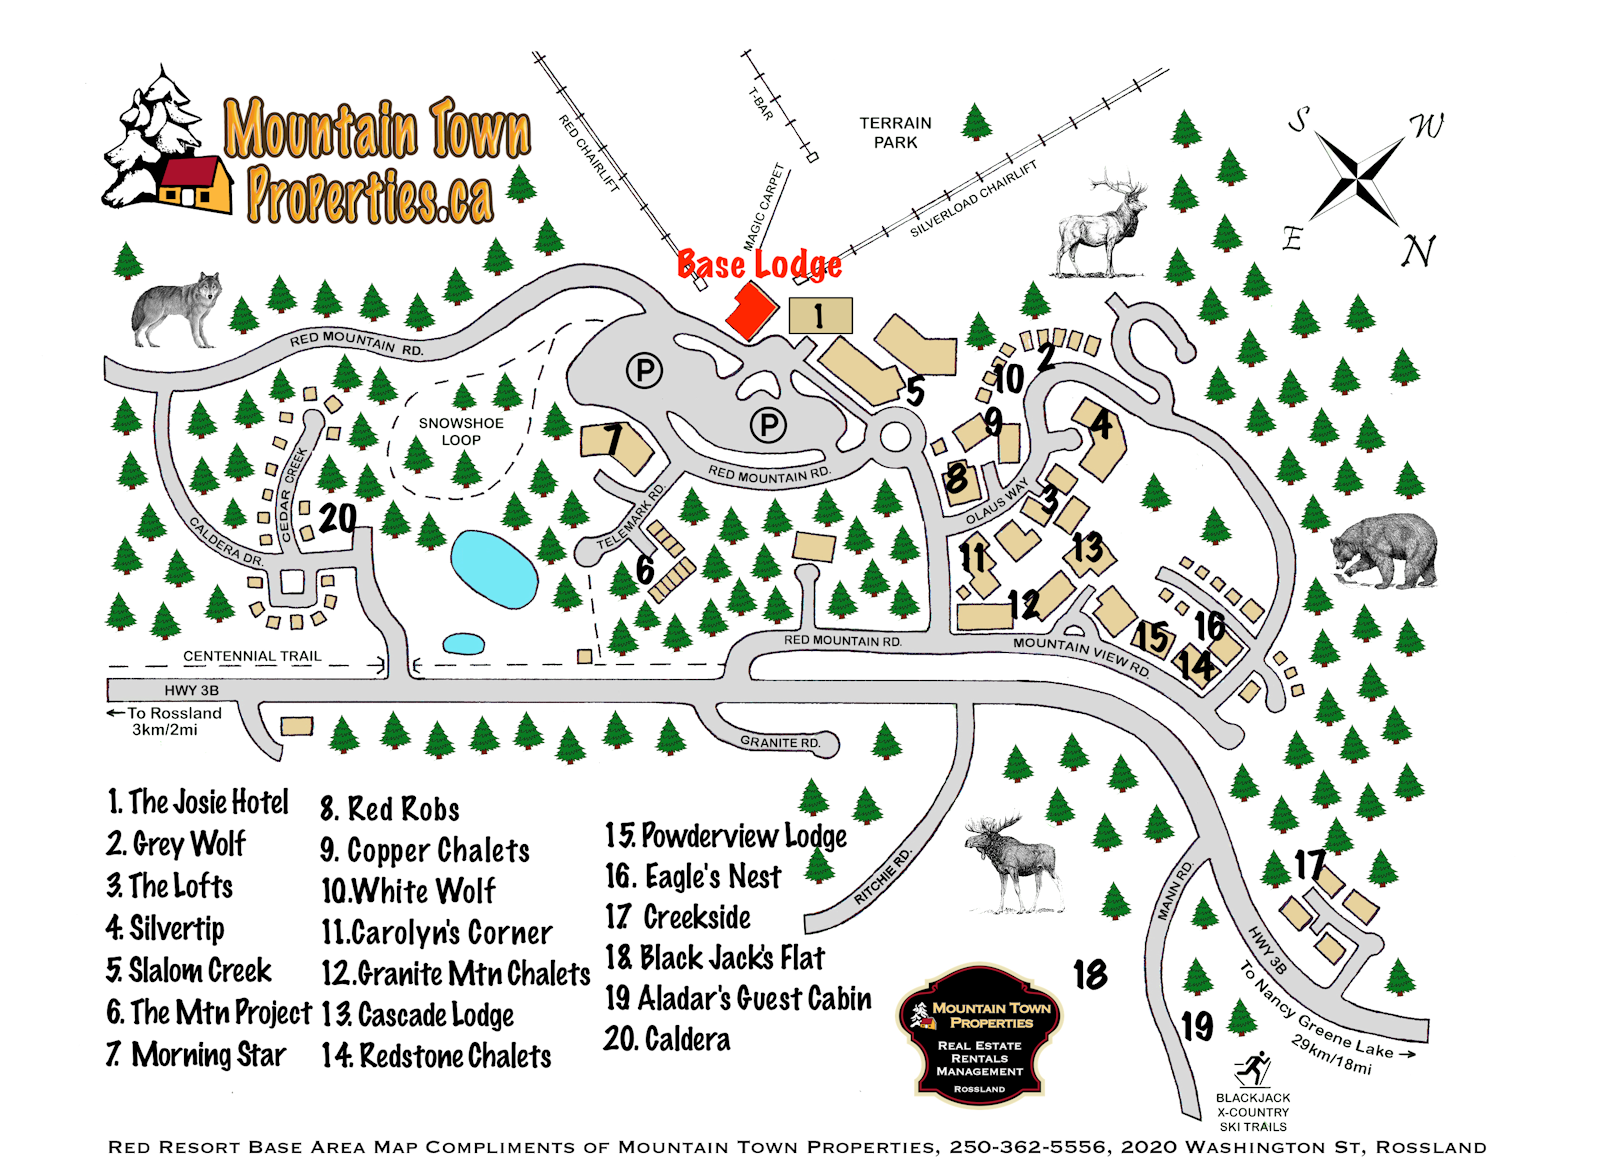 Mountain Town Properties location map